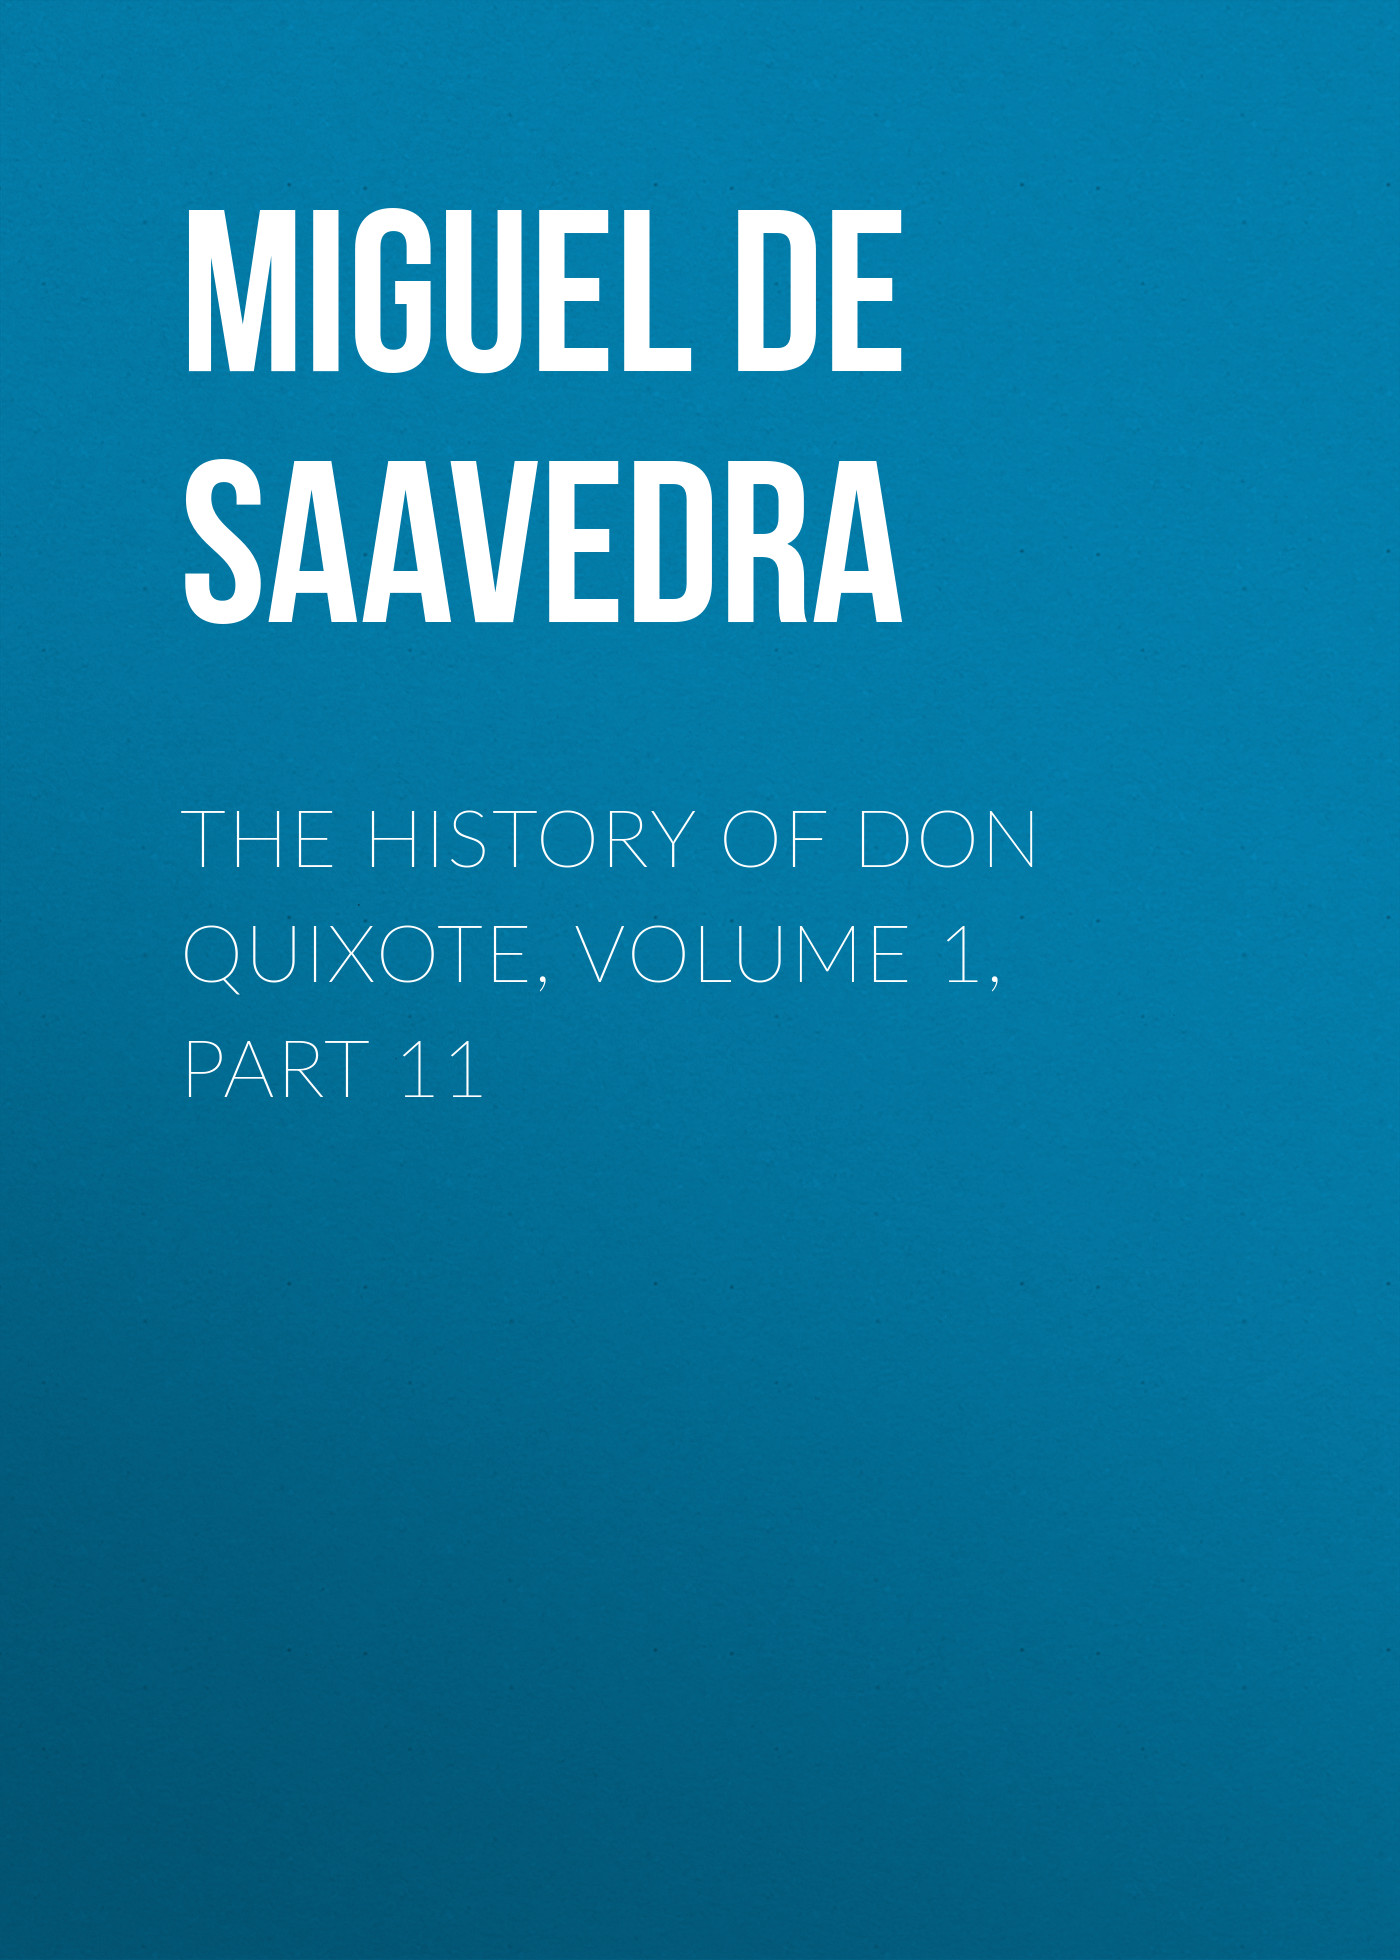 Мигель де Сервантес Сааведра The History of Don Quixote, Volume 1, Part 11 g l shumway history of western nebraska and its people volume 3 part 1